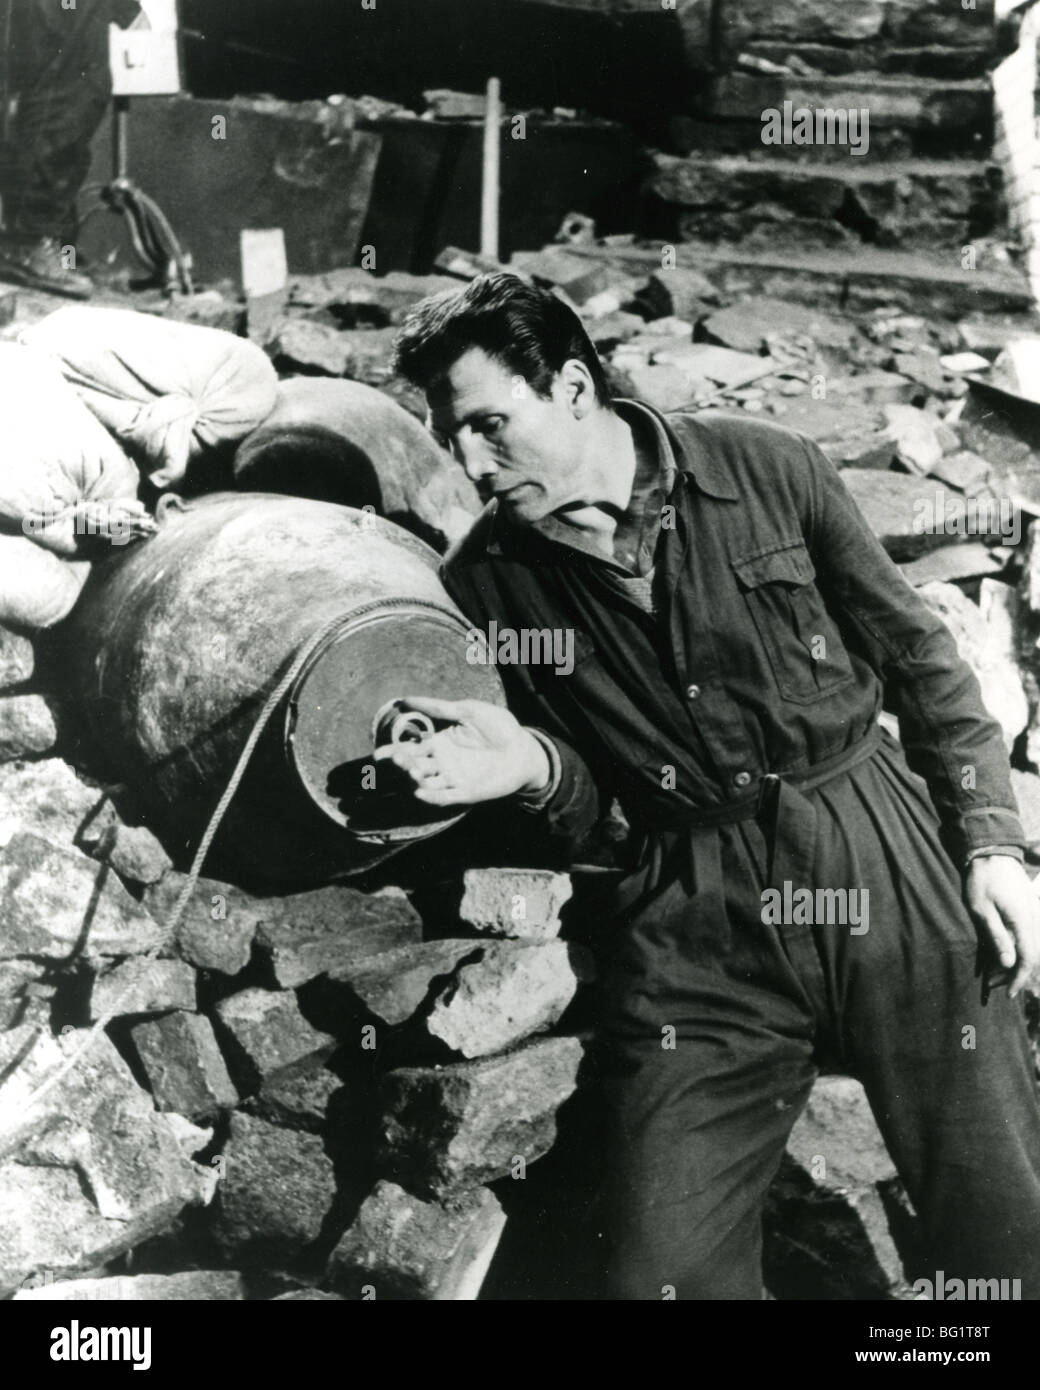 Jack Palance Filmes Cool ten seconds to hell - 1959 ua/hammer/seven arts film with jack